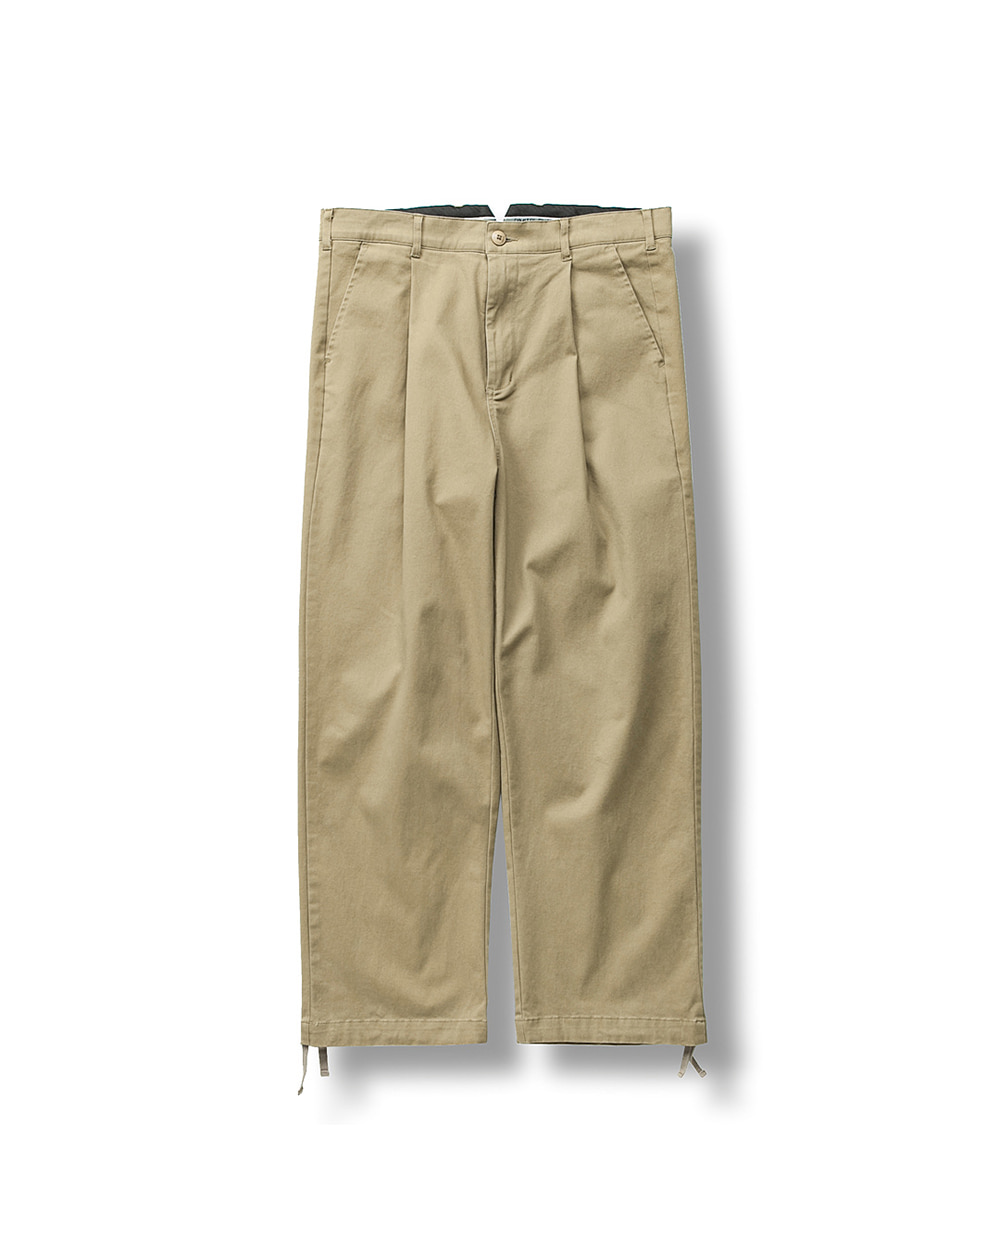 WIDEFIT CHINO PANTS BEIGE